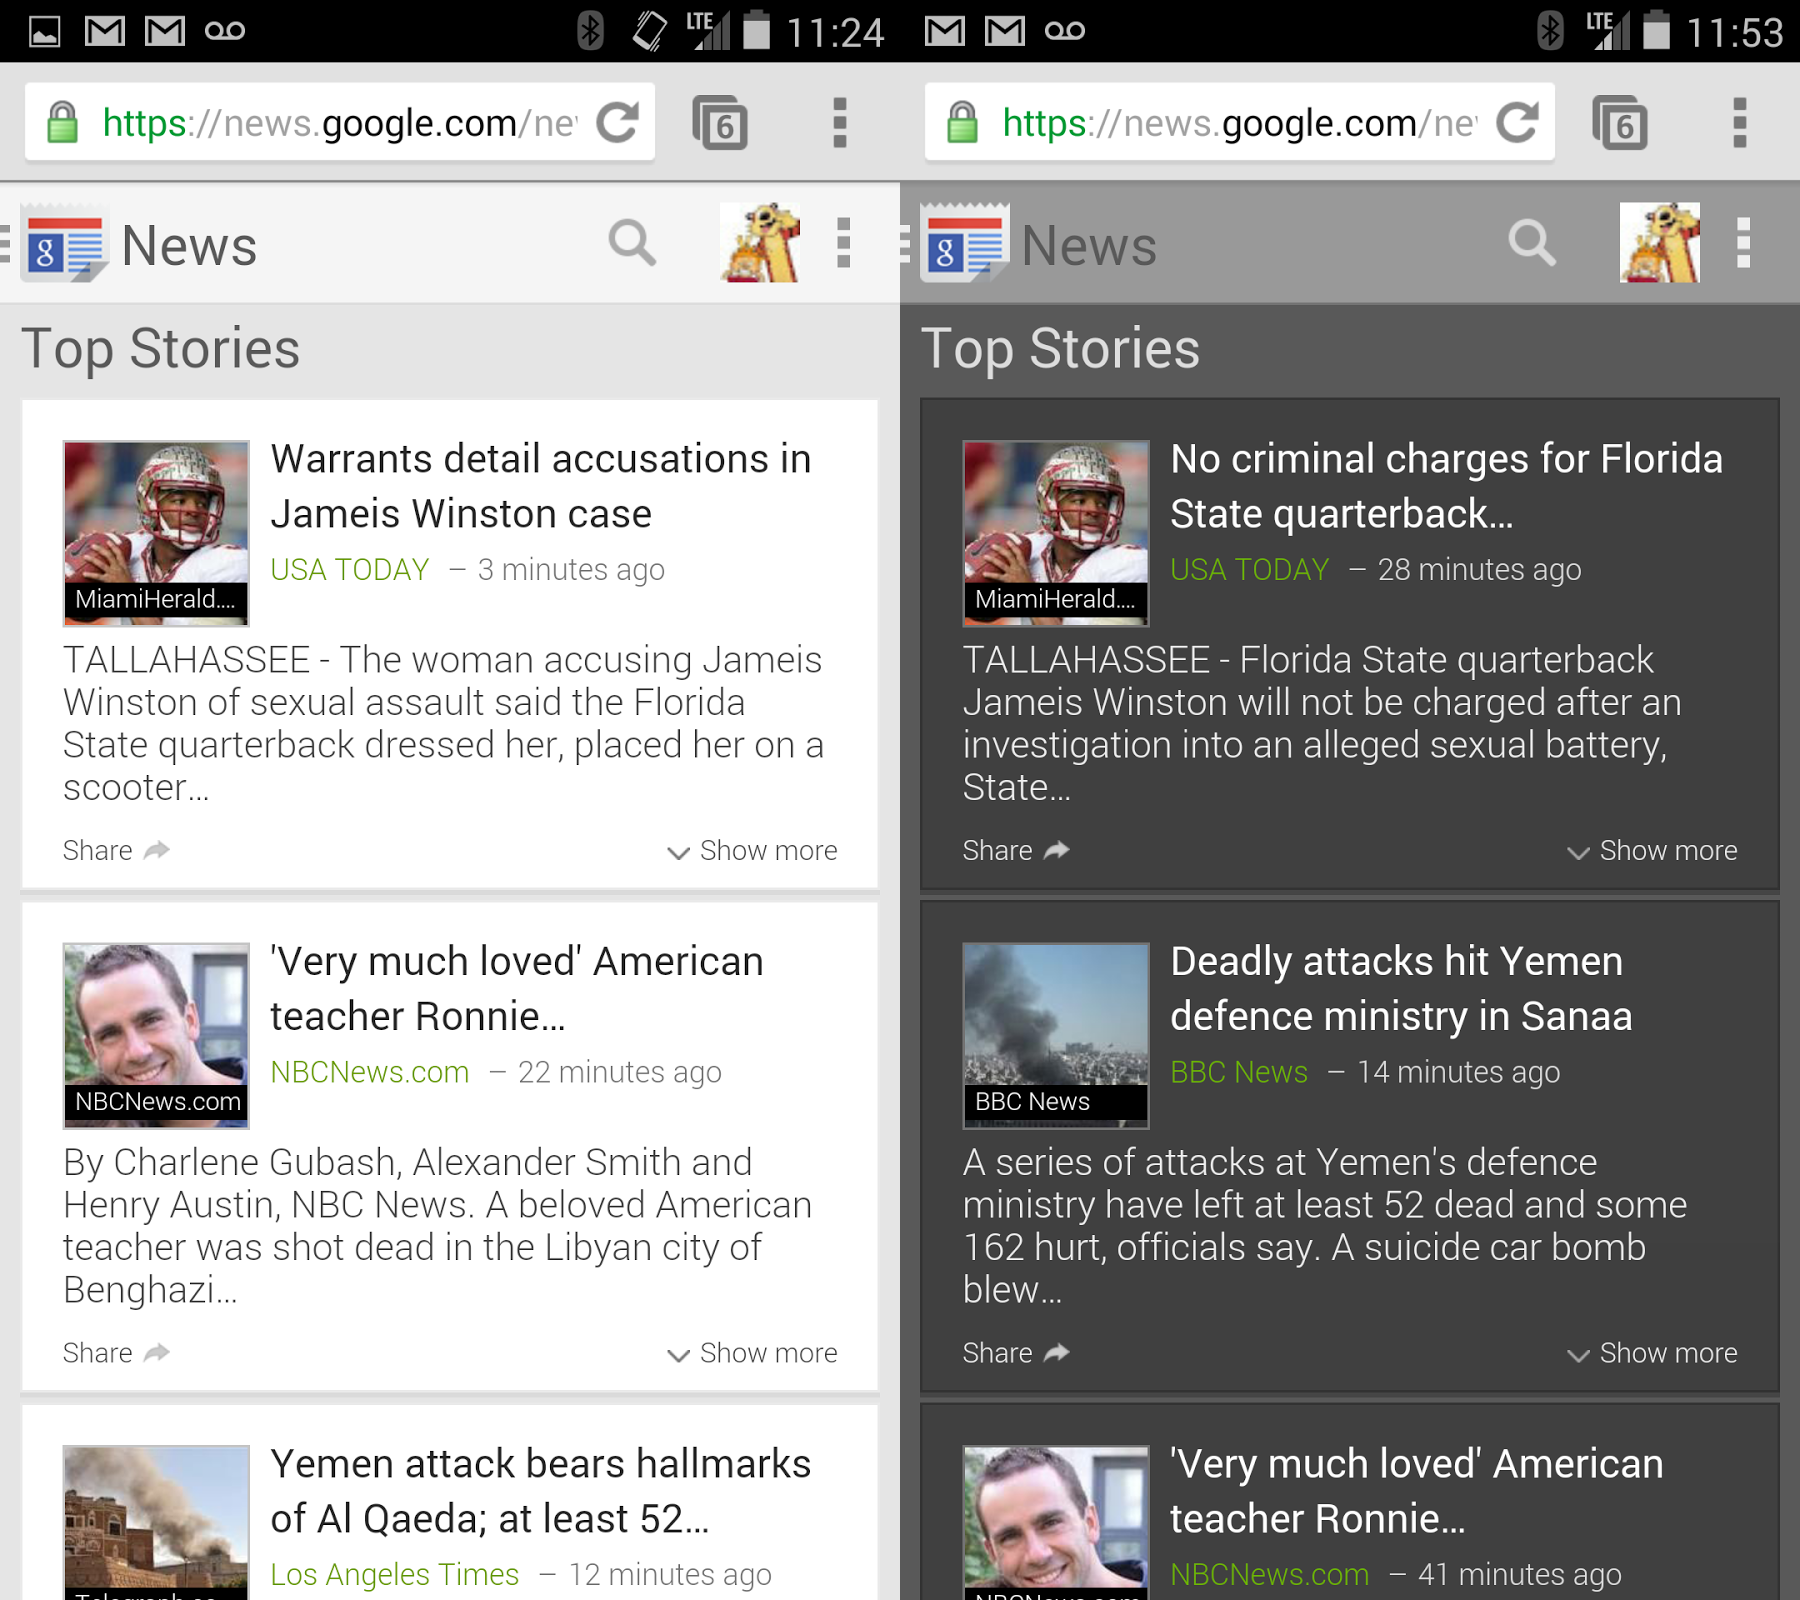 What's New in The Mobile Google + Web Version